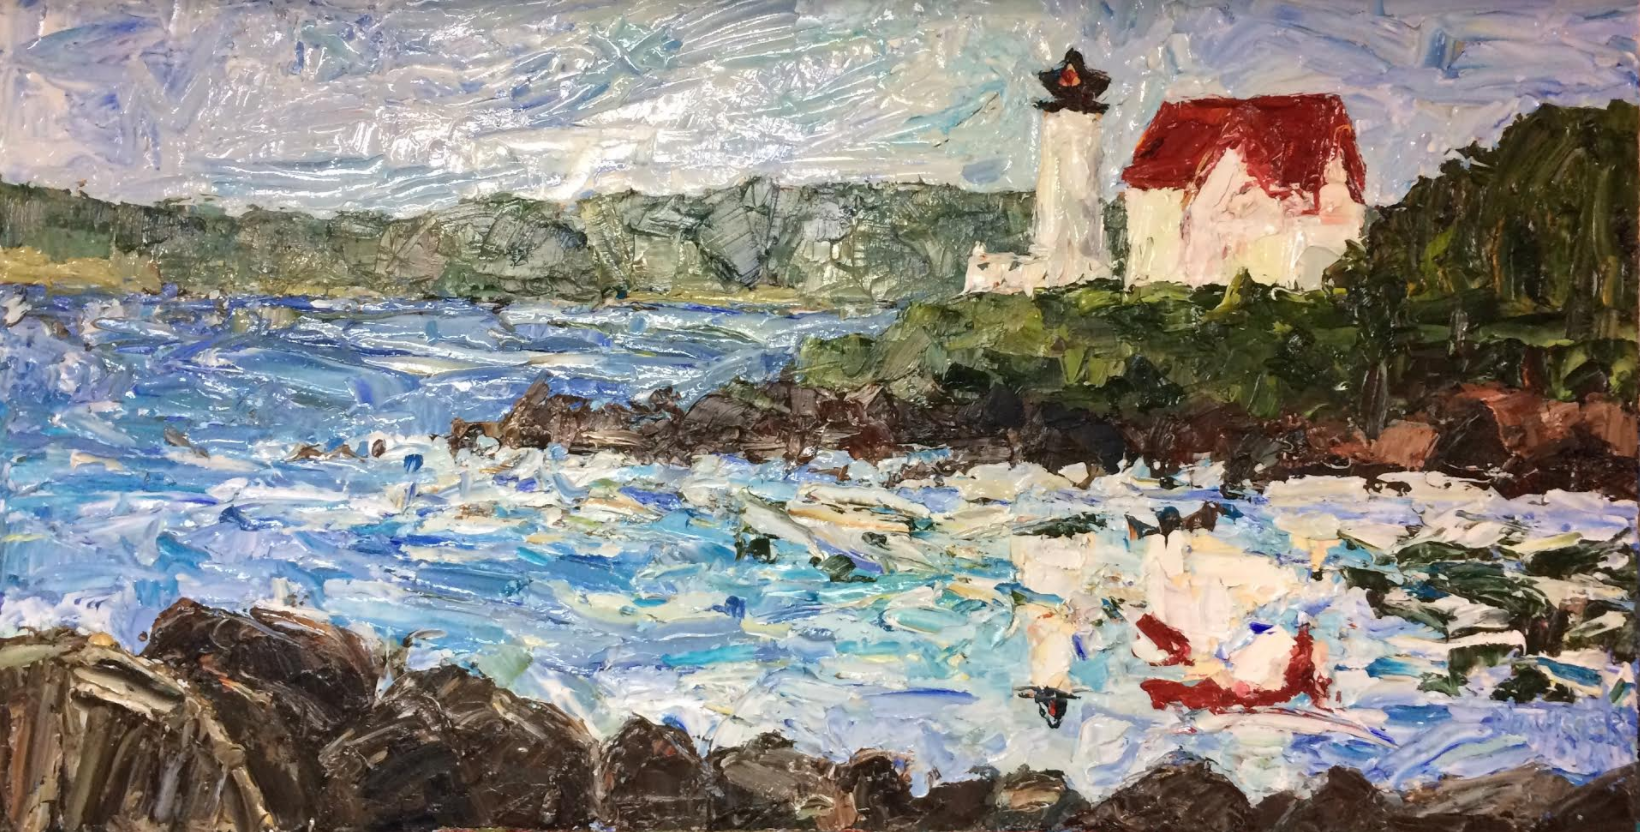 """Hendricks Lighthouse, Maine Lighthouse, Commission, Oil, 46x24in""""  I painted over the below image, using it as an under-painting, to assist me in creating the above final product for the commission. I did not video the final periods of painting which led to the fantastic outcome above.  The completion of this painting was the result of several layers and tubes of paint and the triumph of joy and grace over doubt and discouragement. The hardest aspect of painting a commission is forming a composition of colors and strokes that genuinely speak to the client. Each commission strengthens me as an artist. The client's eye for what they love about my style often propels me forward to a new depth, searching to further develop it. In the case of this lighthouse the client's family continually expressed their enjoyment of the thick """"goopy"""" layers of paint, resulting in a texture that enhances the painting's voice. Their encouragement freed me to trust my instinct. The difference texture makes in my painting style is evident when comparing the thinly applied under-painting below and the texture filled goopy layered painting above."""